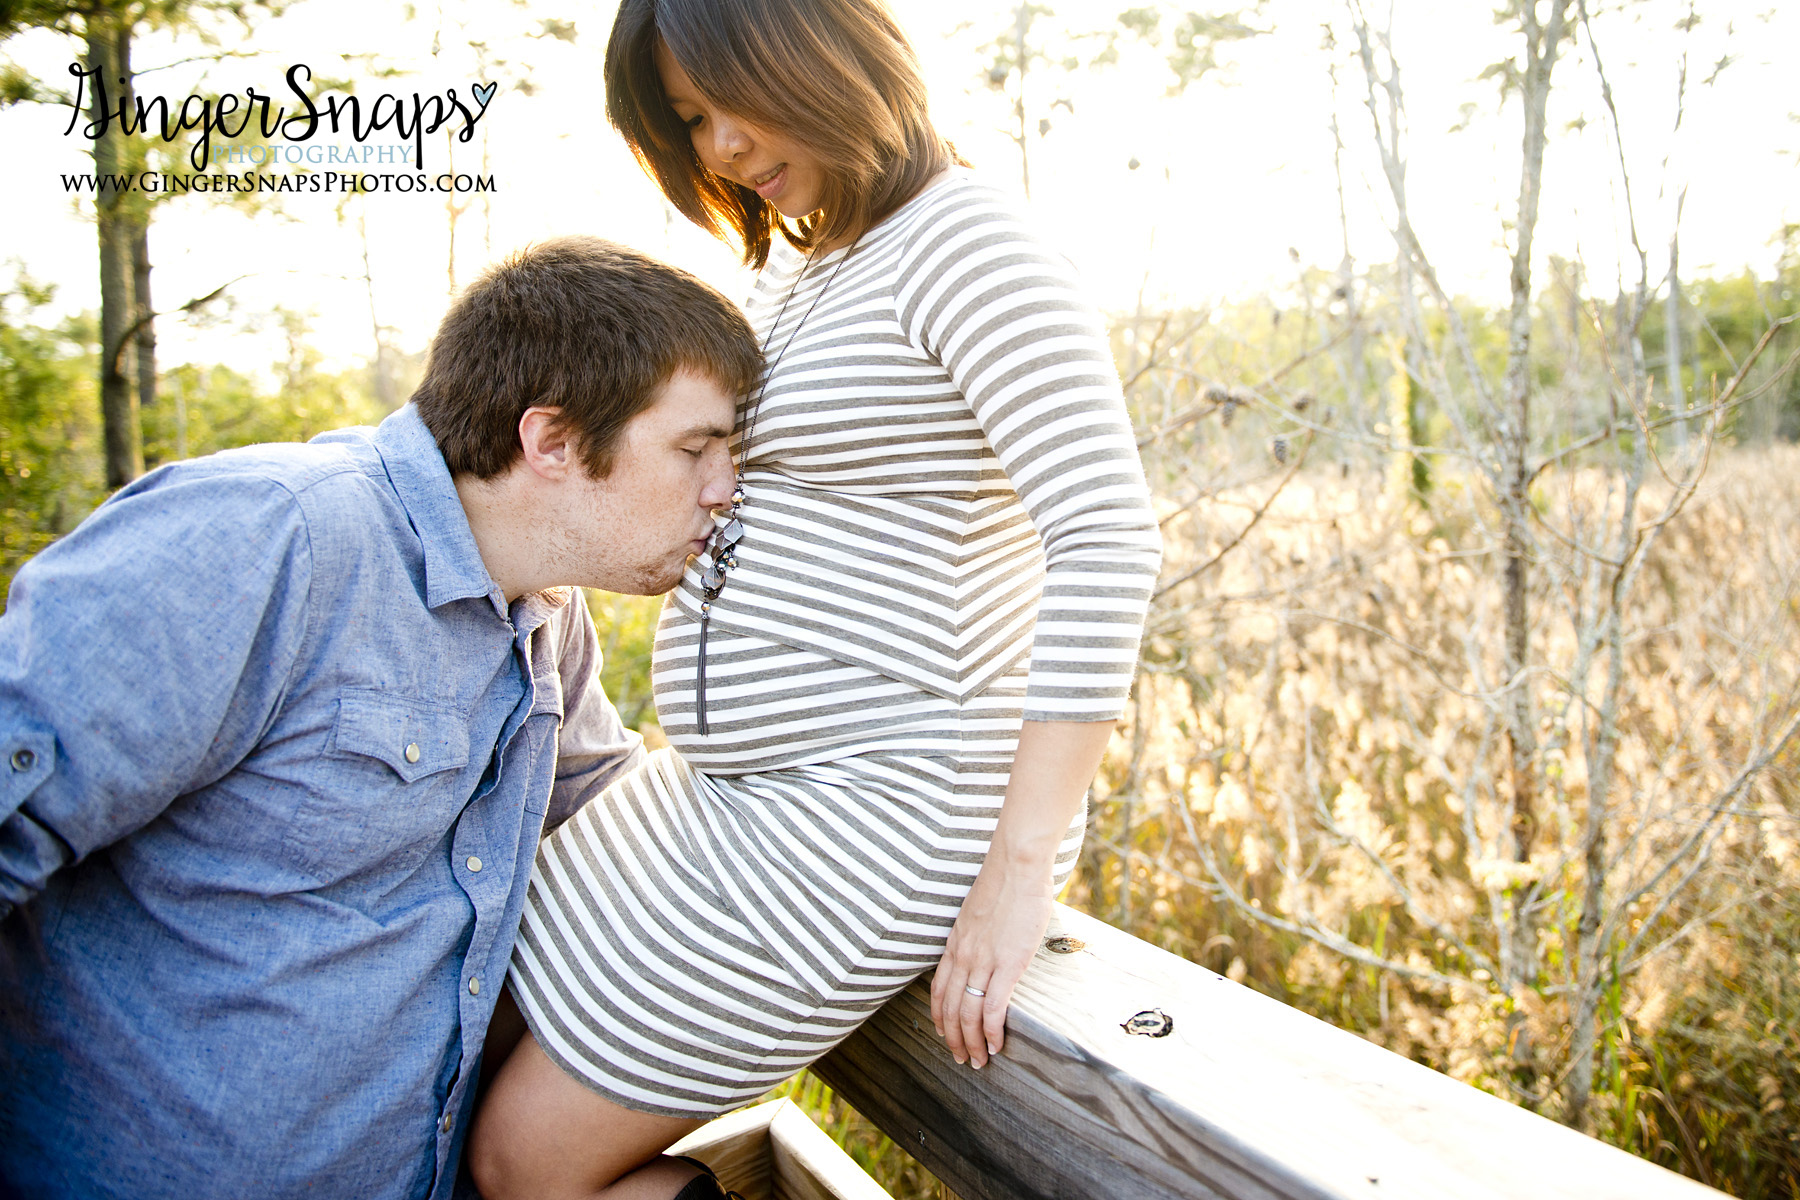 GingerSnaps Photography - 41